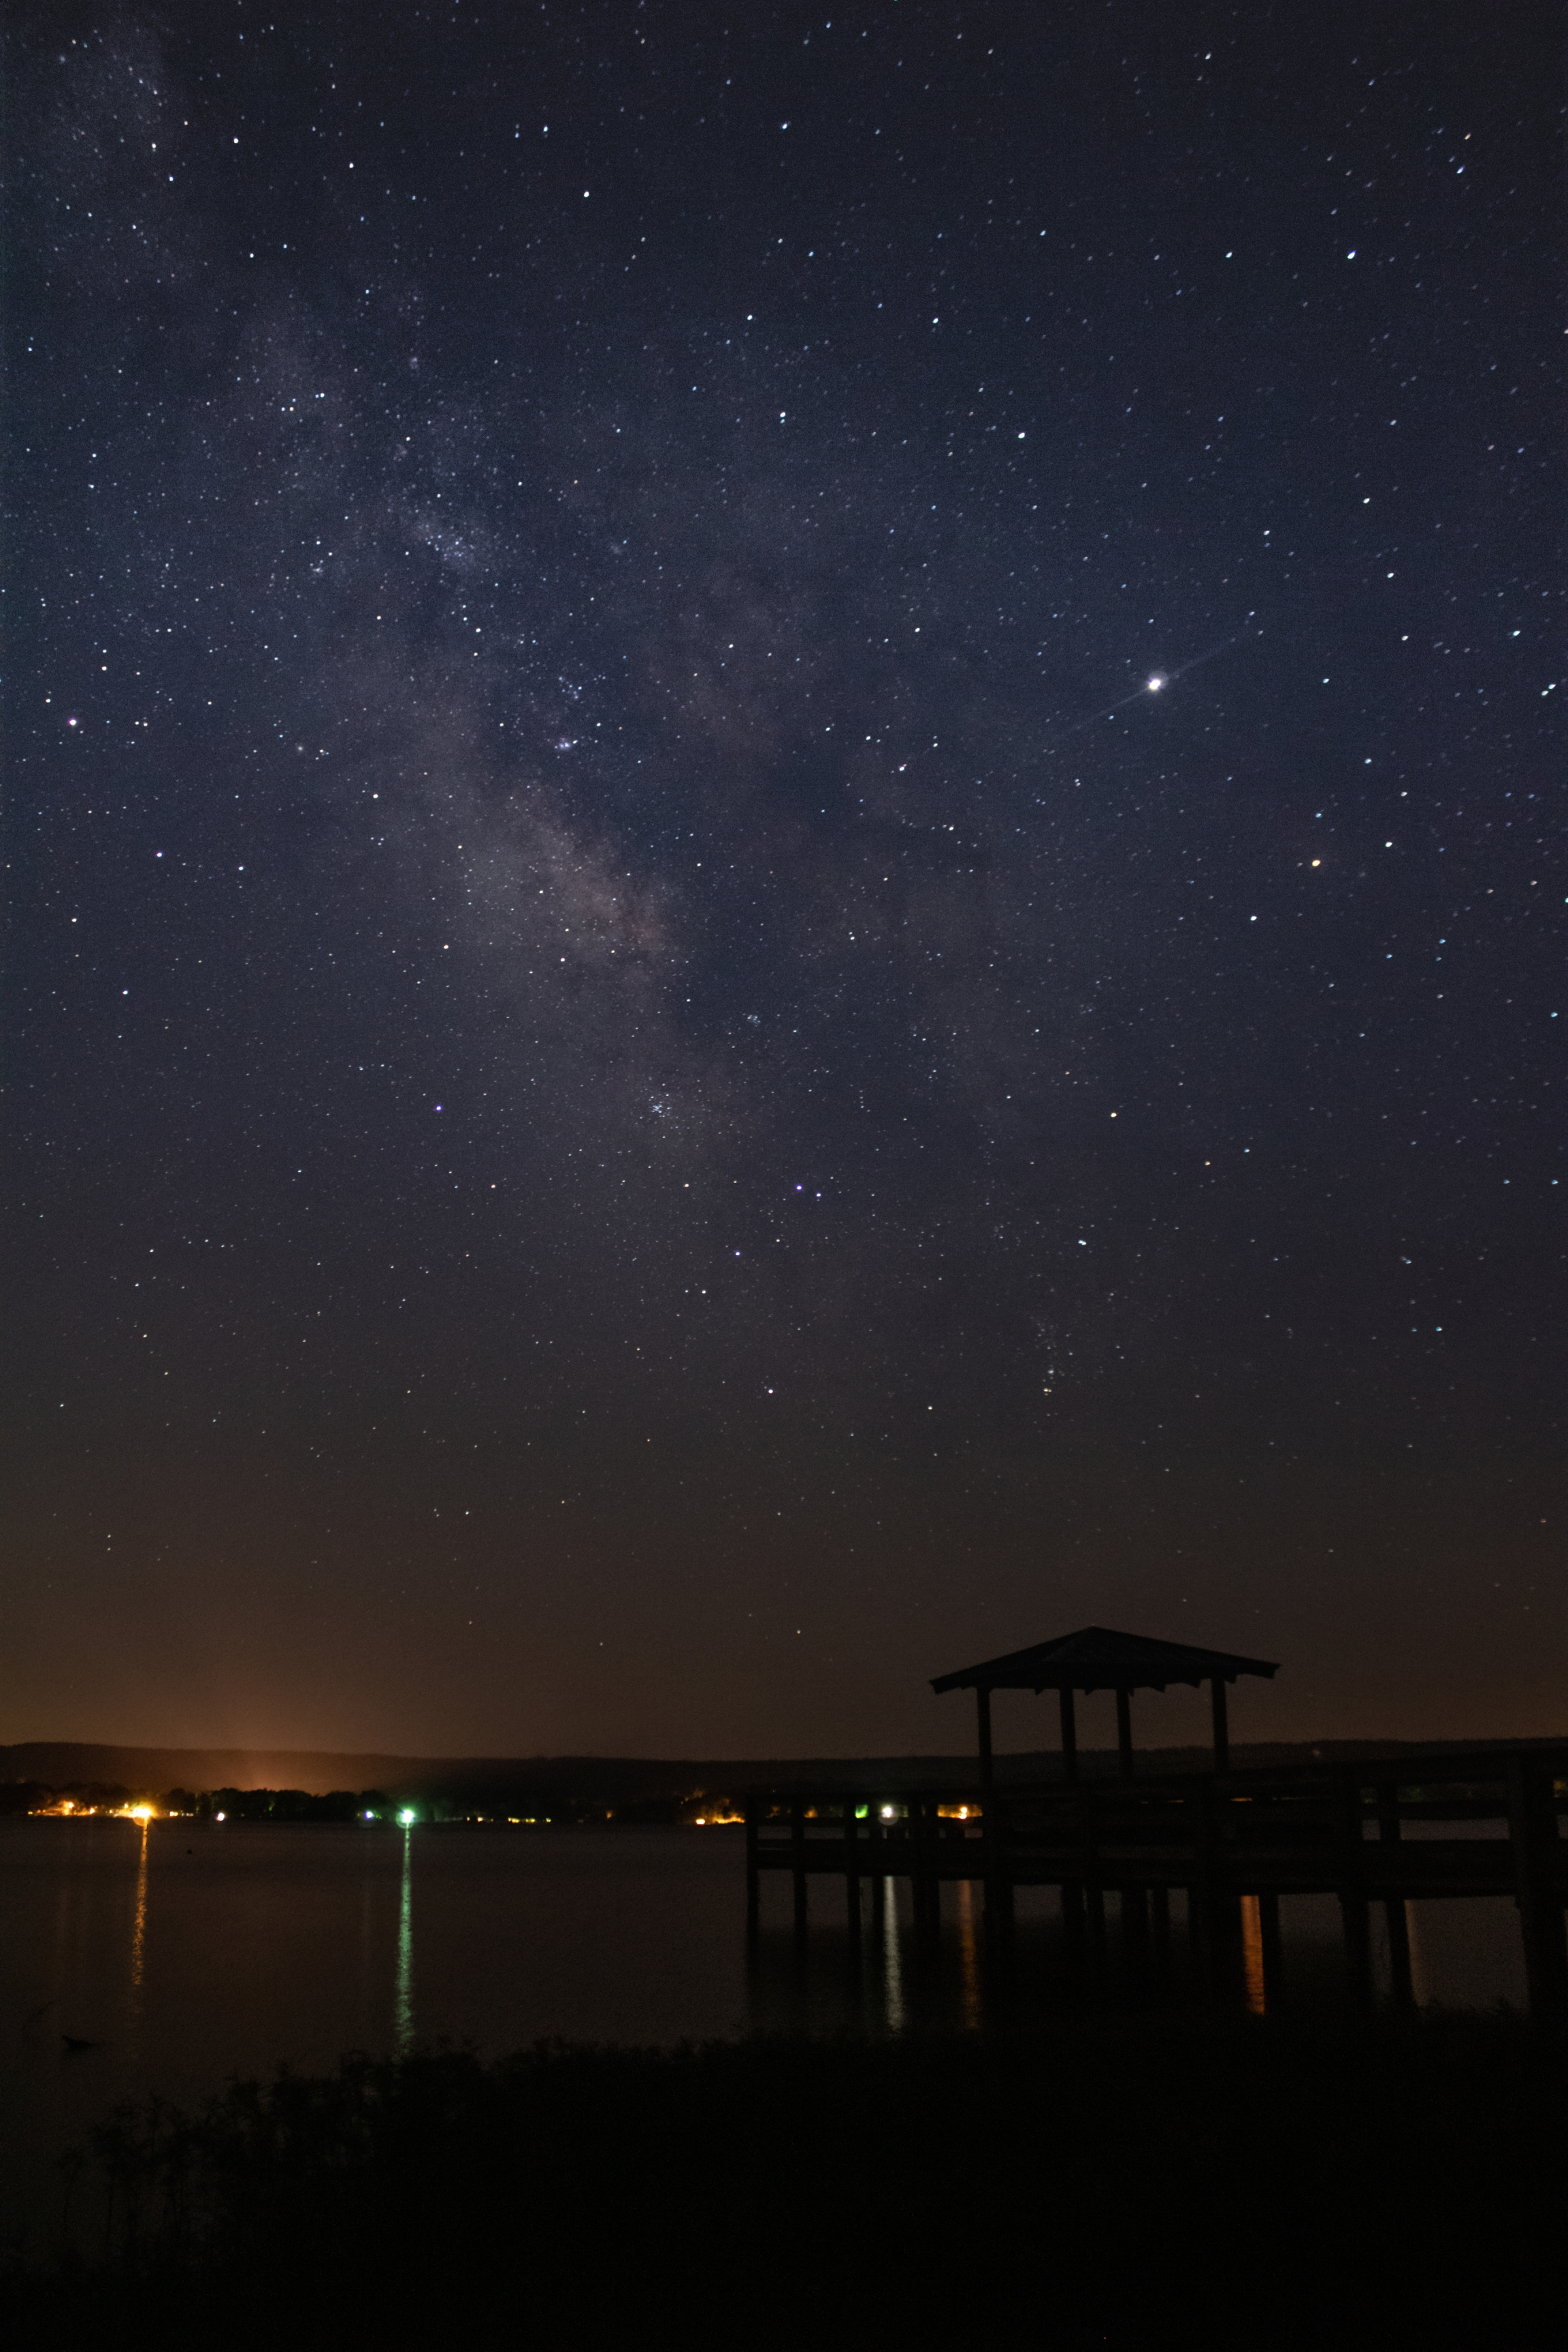 Milky Way night sky over pier and lake